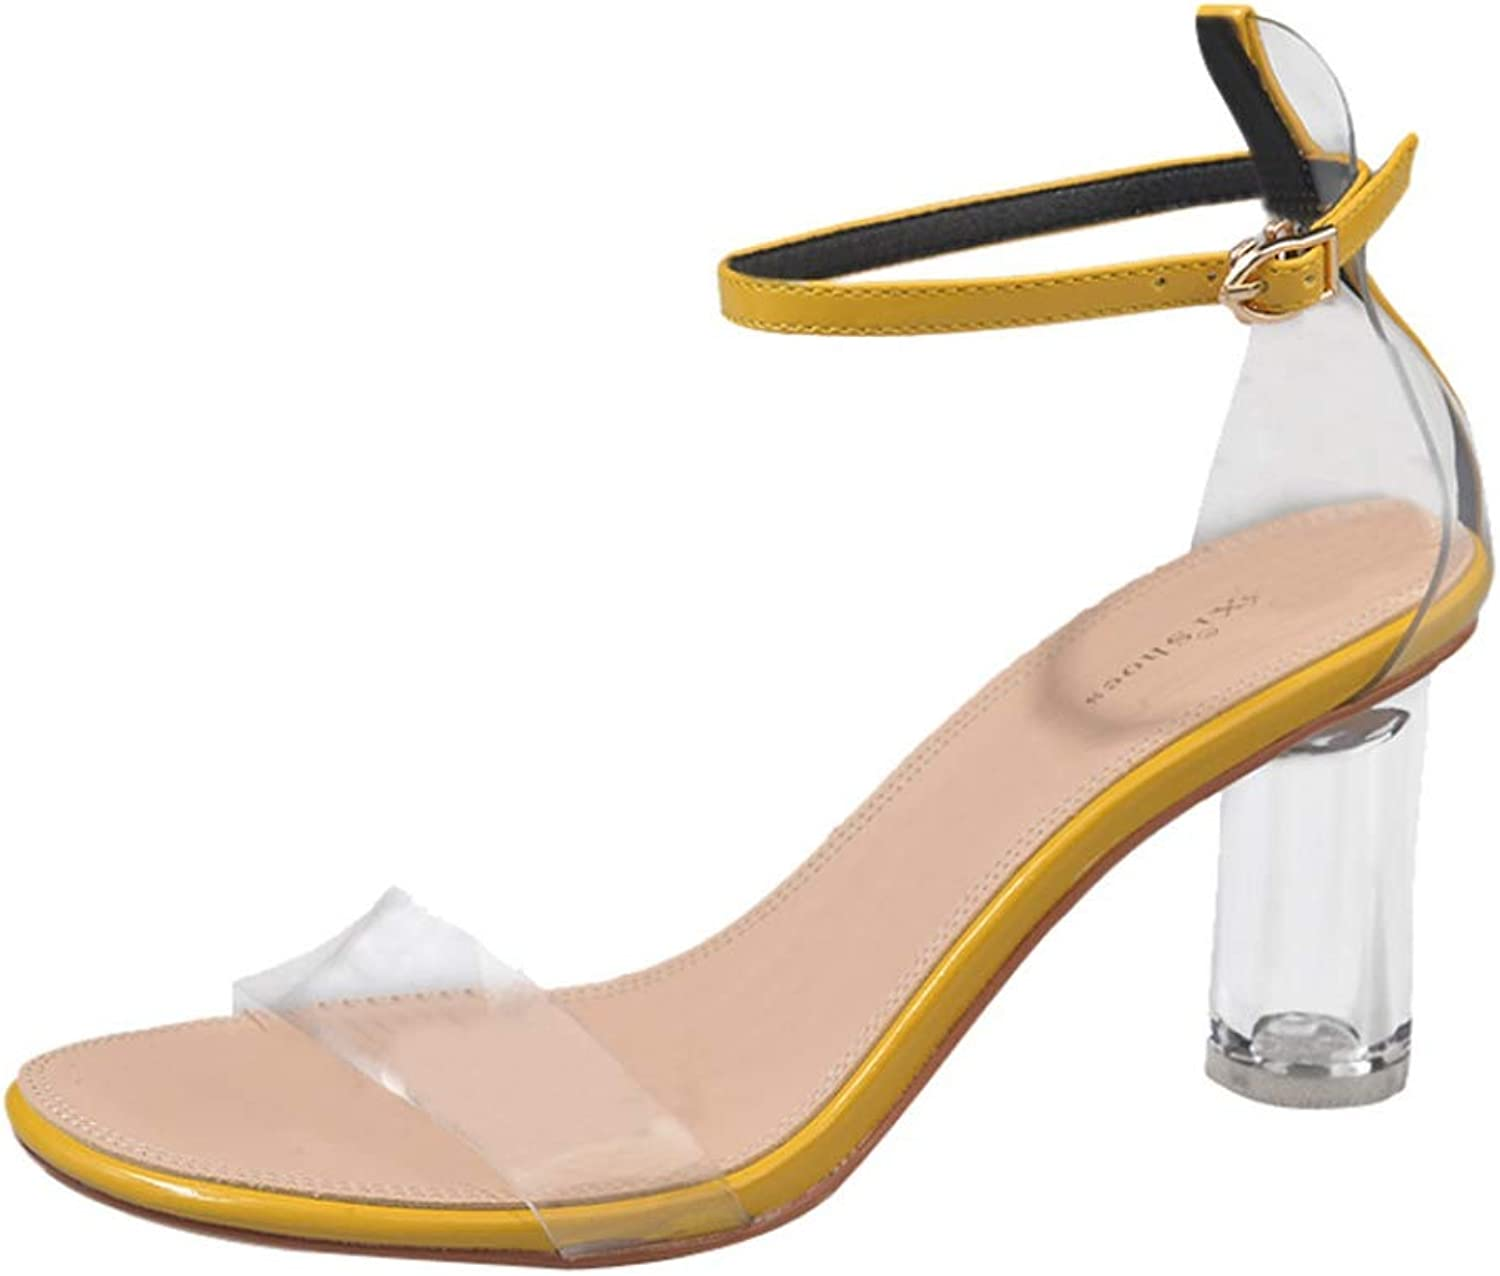 Women's Clear Buckle Strappy Sandals High Transparent Heel Ladies Sexy Summer Fashion Peep Toe shoes